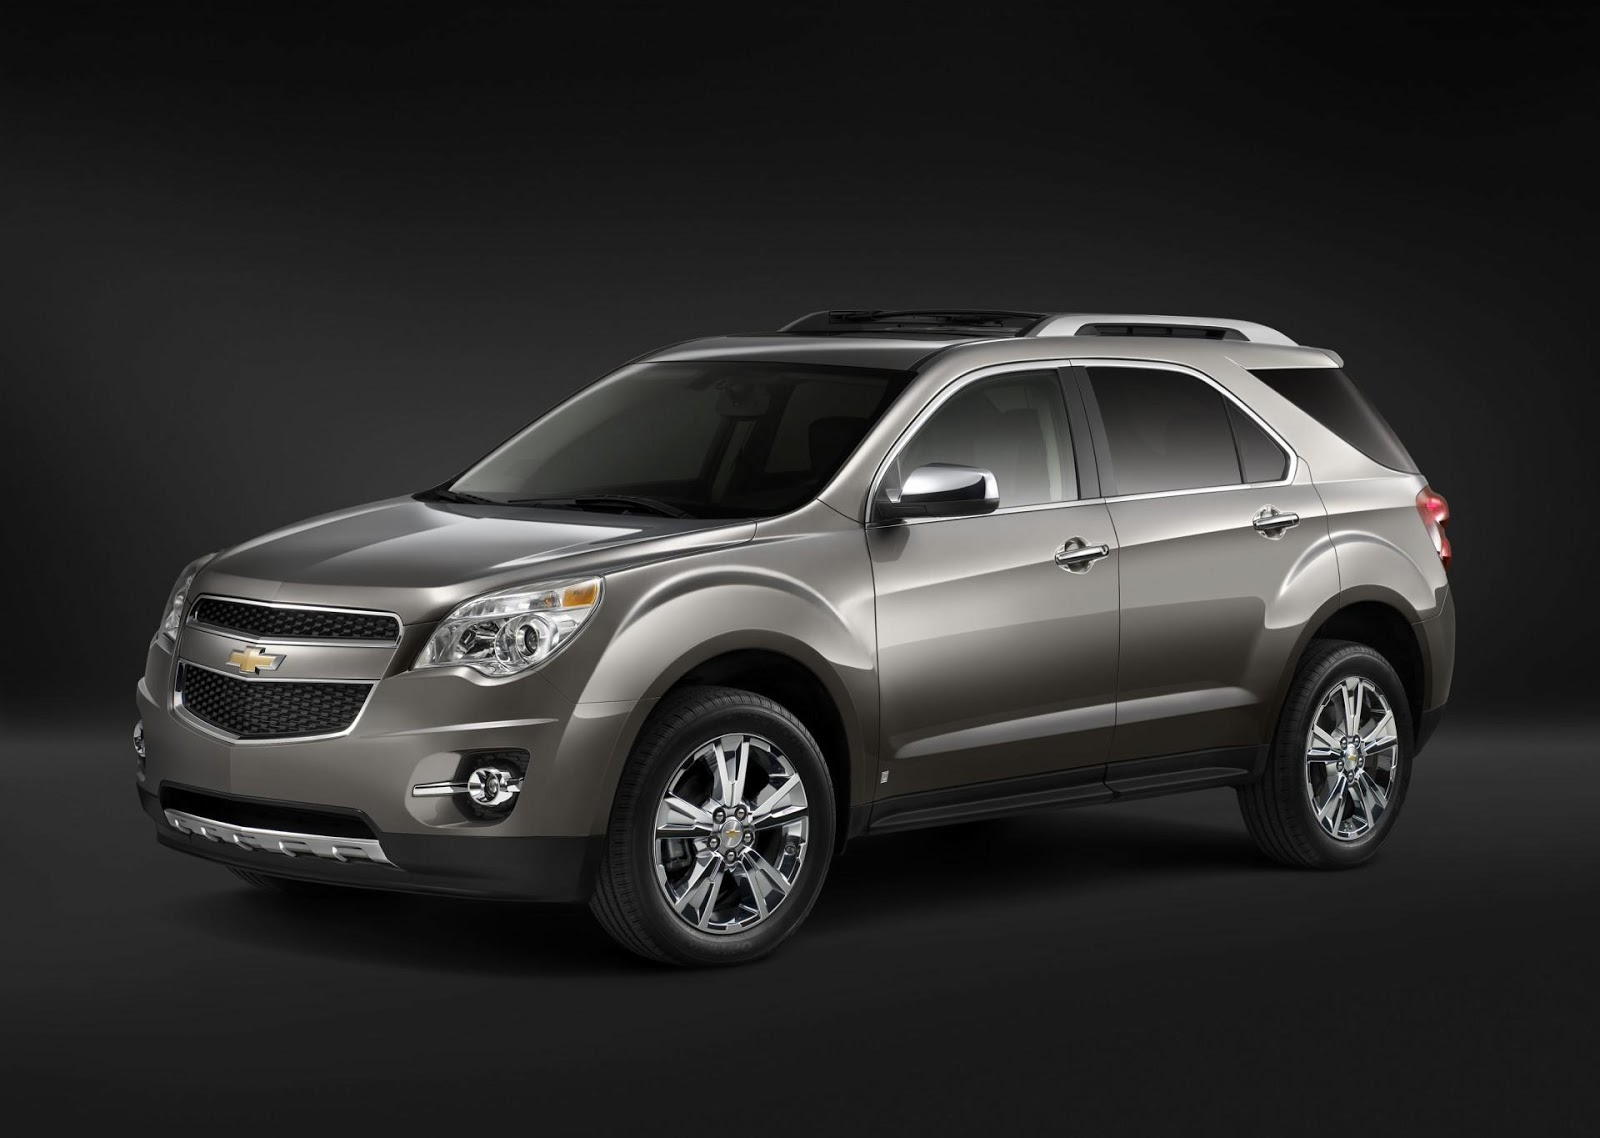 chevrolet equinox 2014 hottest car wallpapers bestgarage. Black Bedroom Furniture Sets. Home Design Ideas